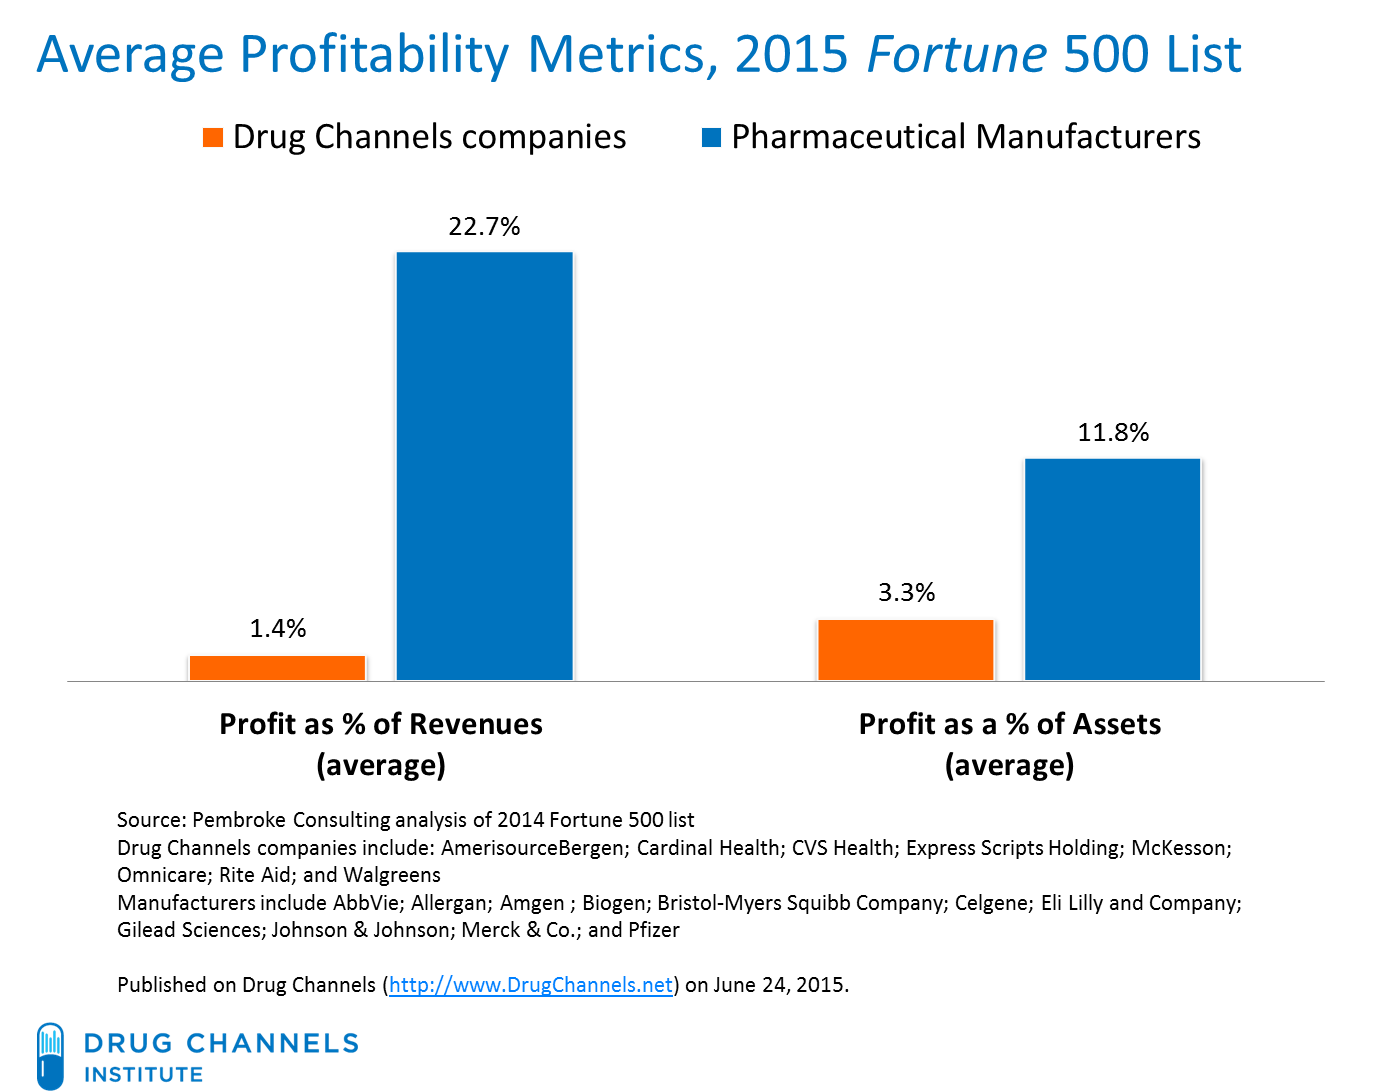 Drug Channels: Profits in the 2015 Fortune 500